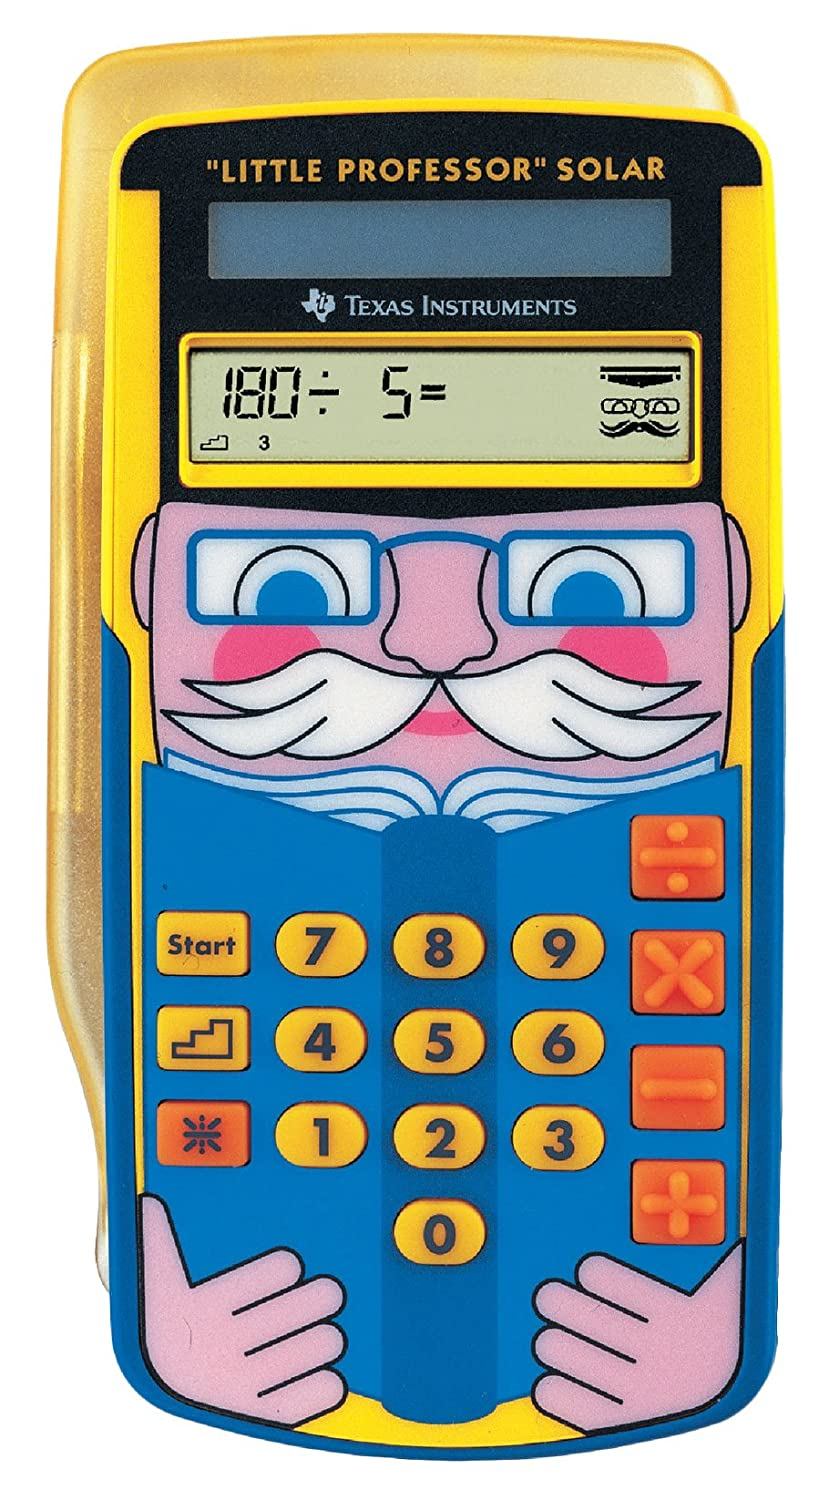 Texas Instruments LPROFSOLAR Little Professor Solar Calculator OfficeCentre B0091IBOJS